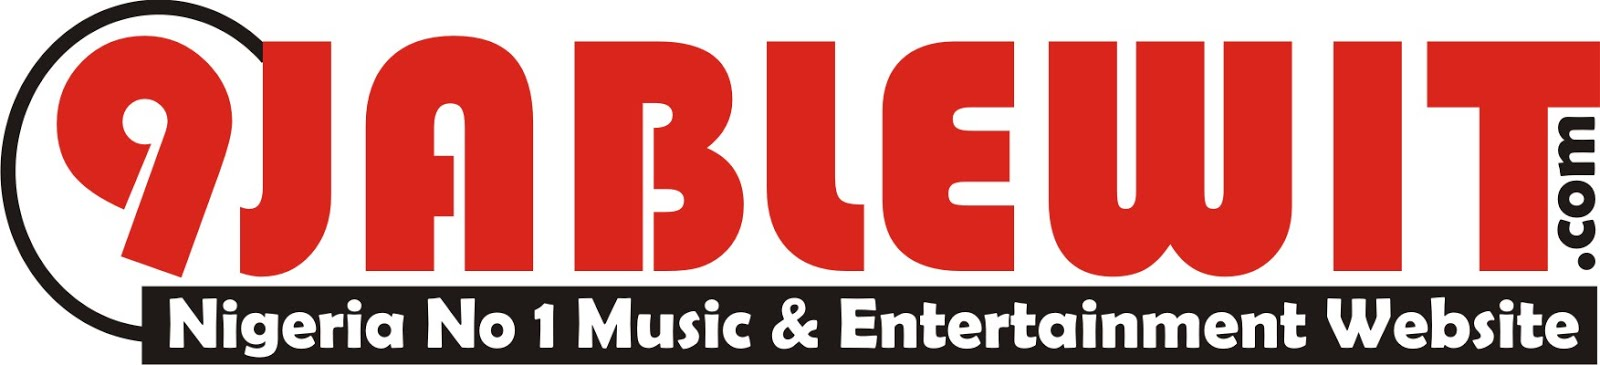 9jablewit | Nigeria's No. 1 Music & Entertainment Website